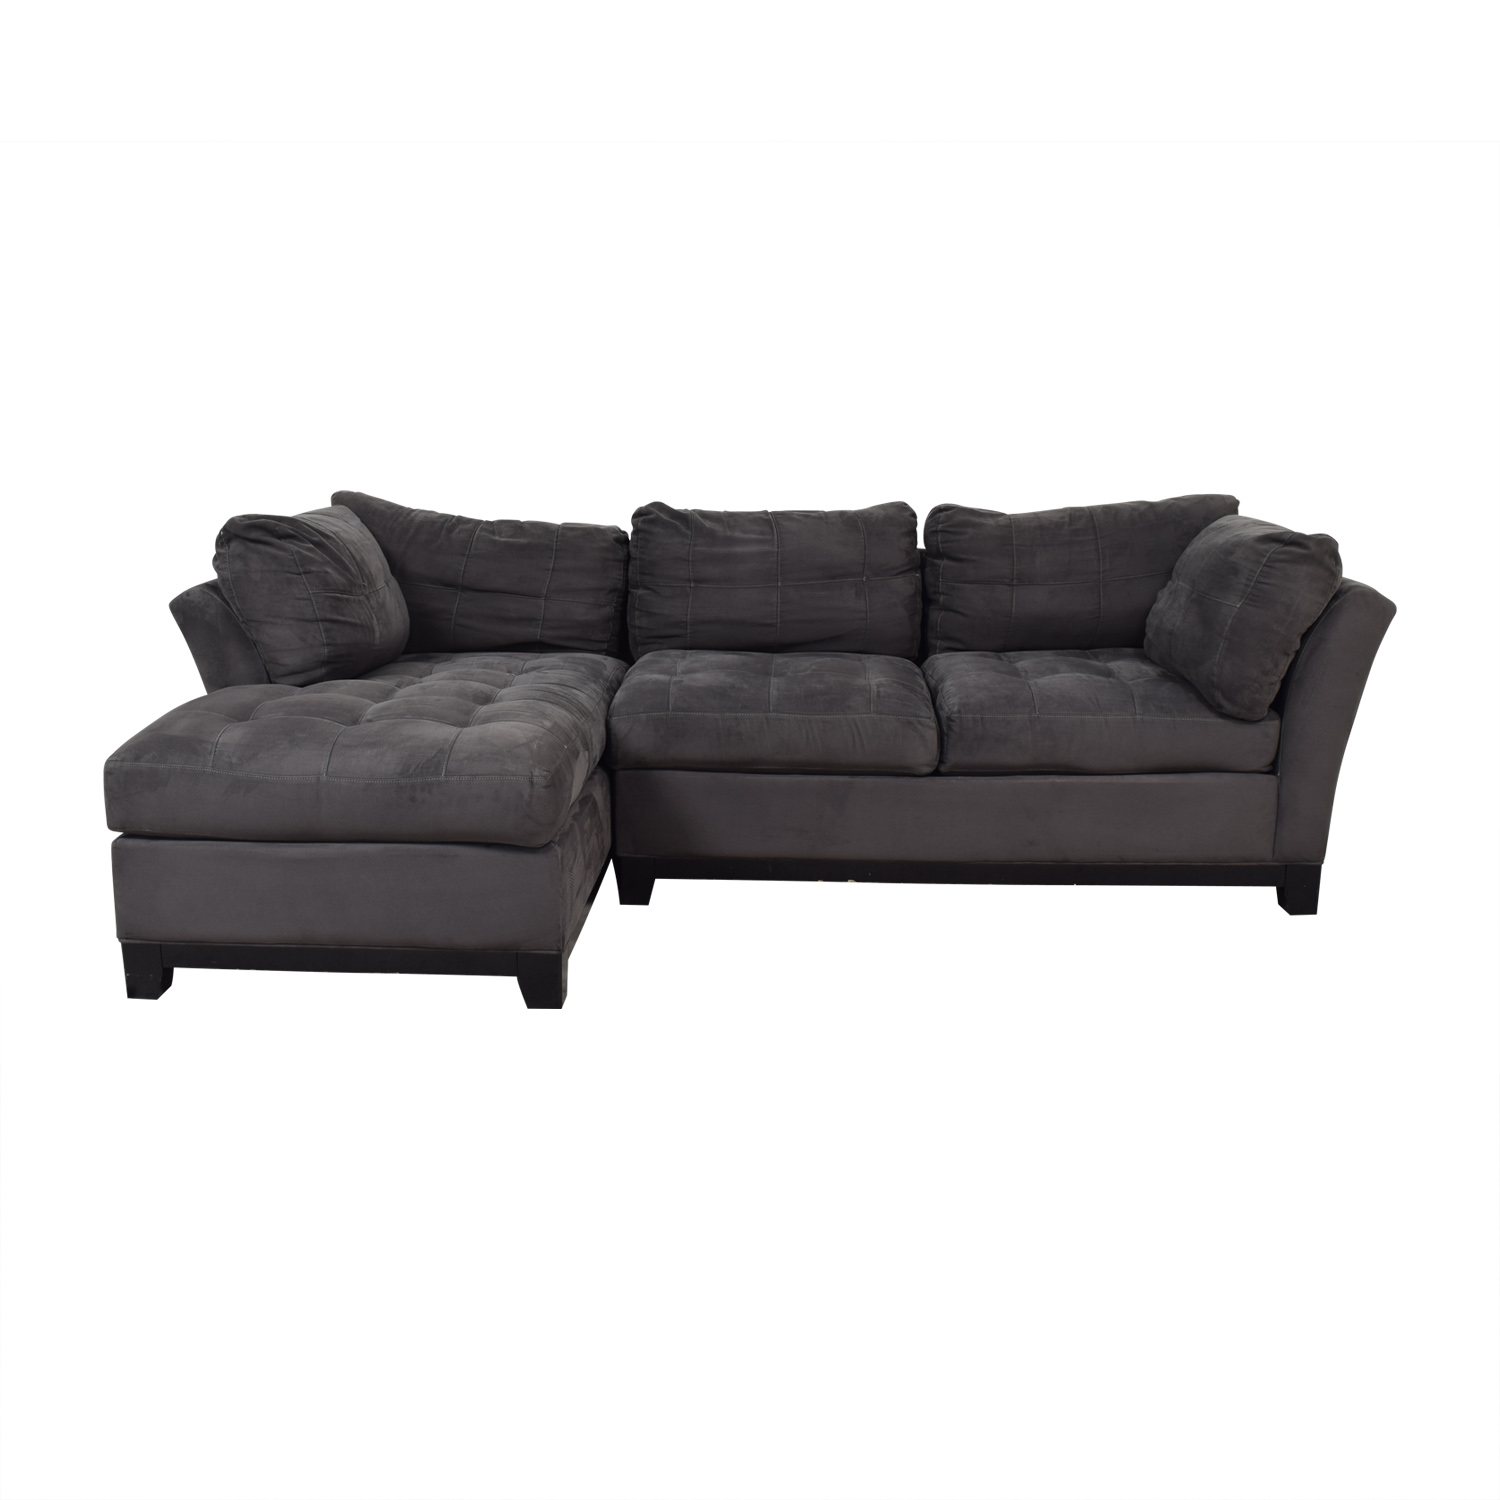 Raymour & Flanigan Raymour & Flanigan Cindy Crawford Grey Semi Tufted Chaise Sectional second hand